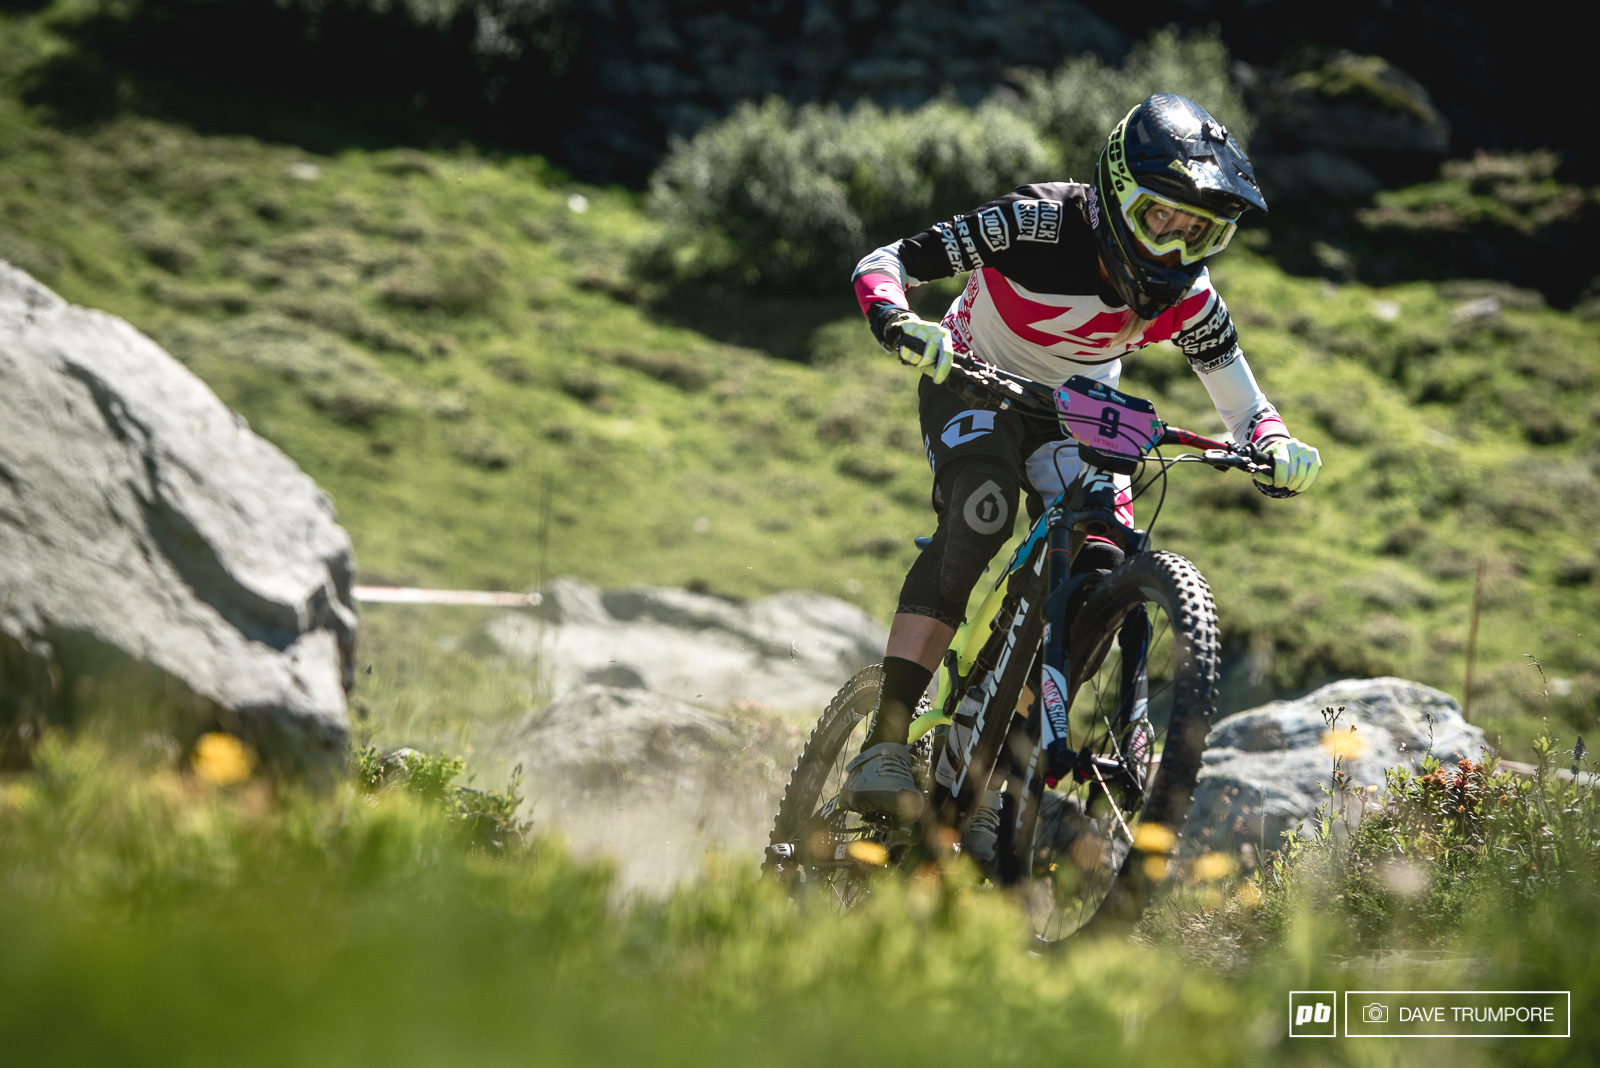 Rae Morrison looked super smooth on the steep switchbacks of Stage 1 but a crash in the lower woods would cut her day short with a shoulder injury.